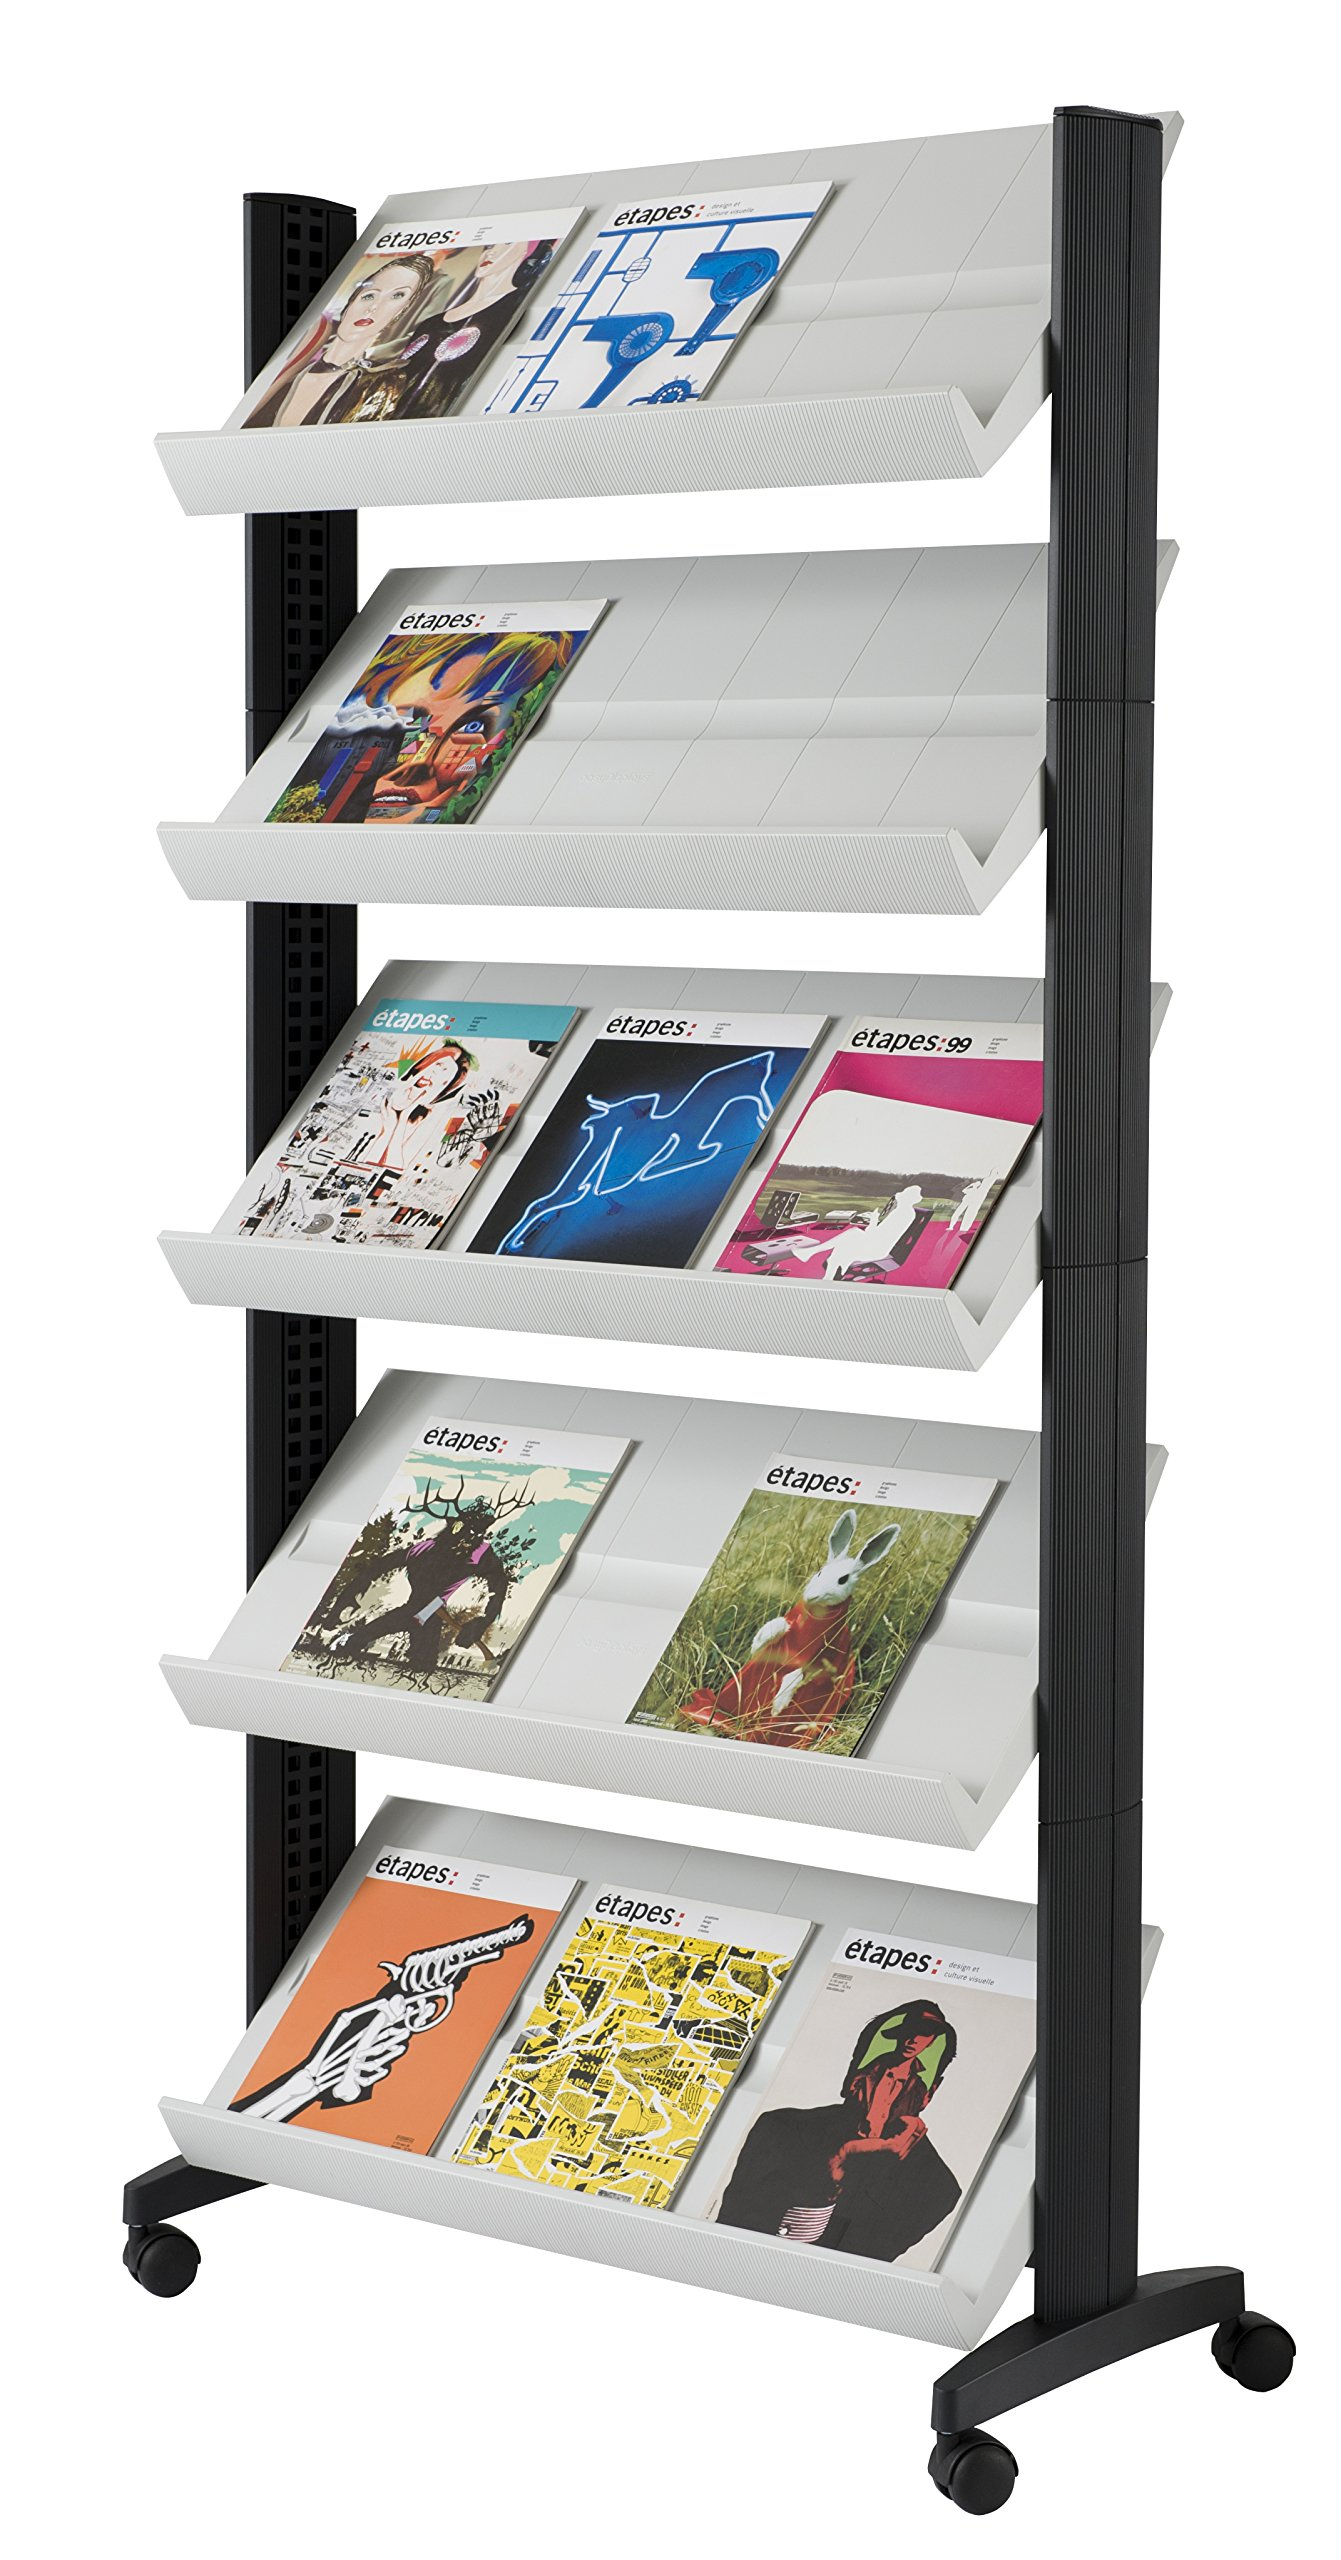 PaperFlow Single Sided Mobile Literature Display, 5 Shelves, 33.67x15.17x66 Inches, Silver (255N.35)